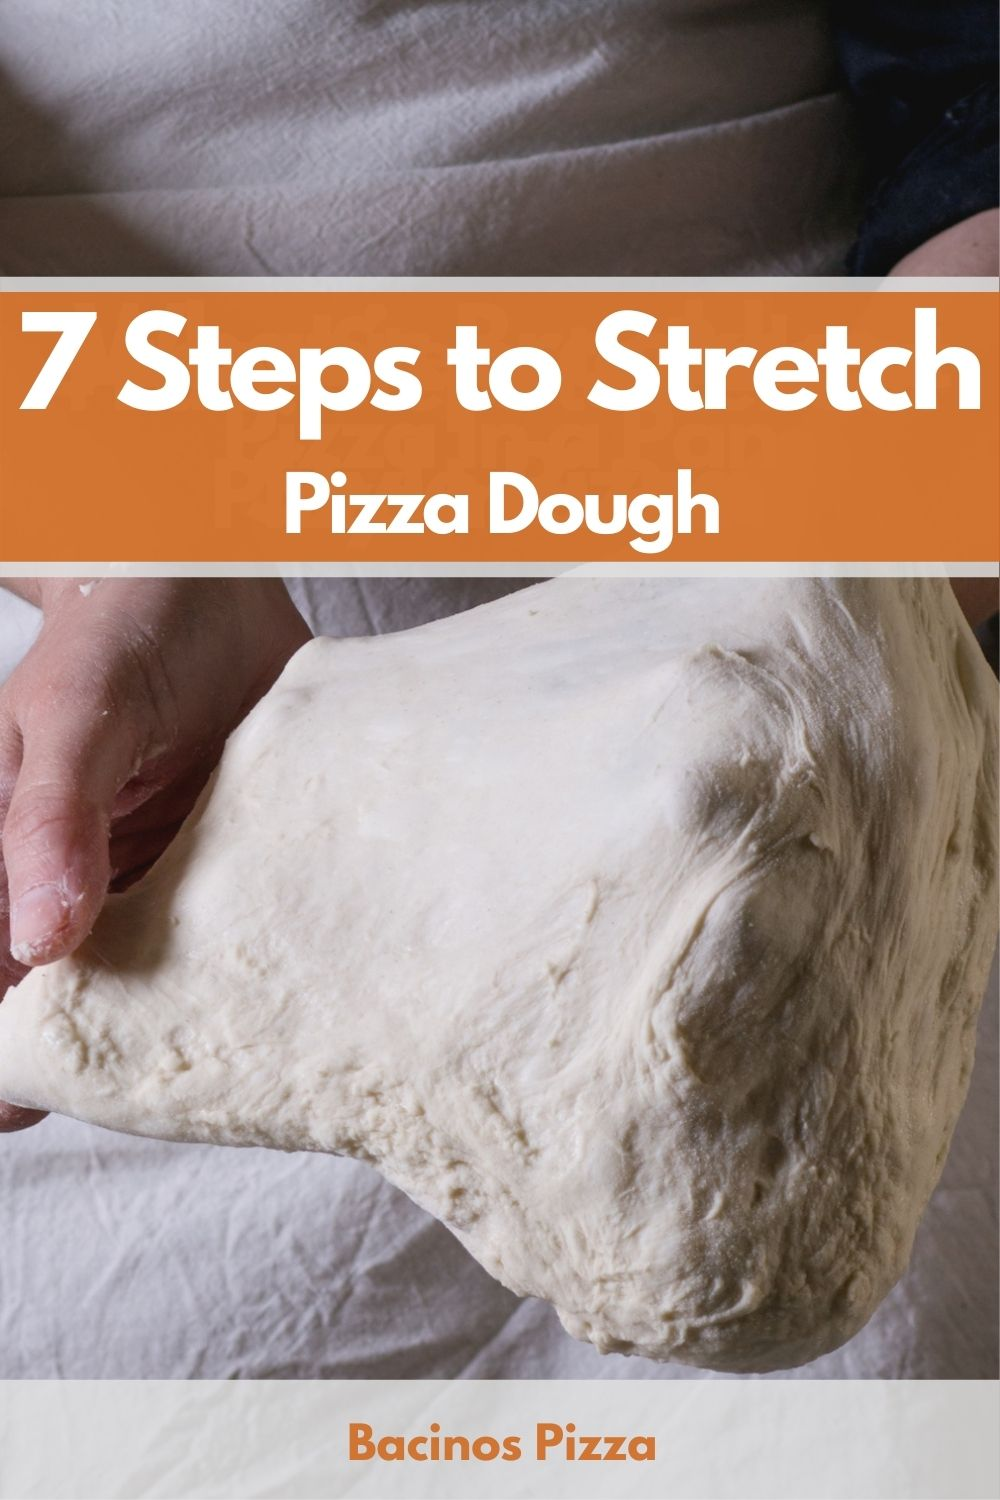 7 Steps to Stretch Pizza Dough pin